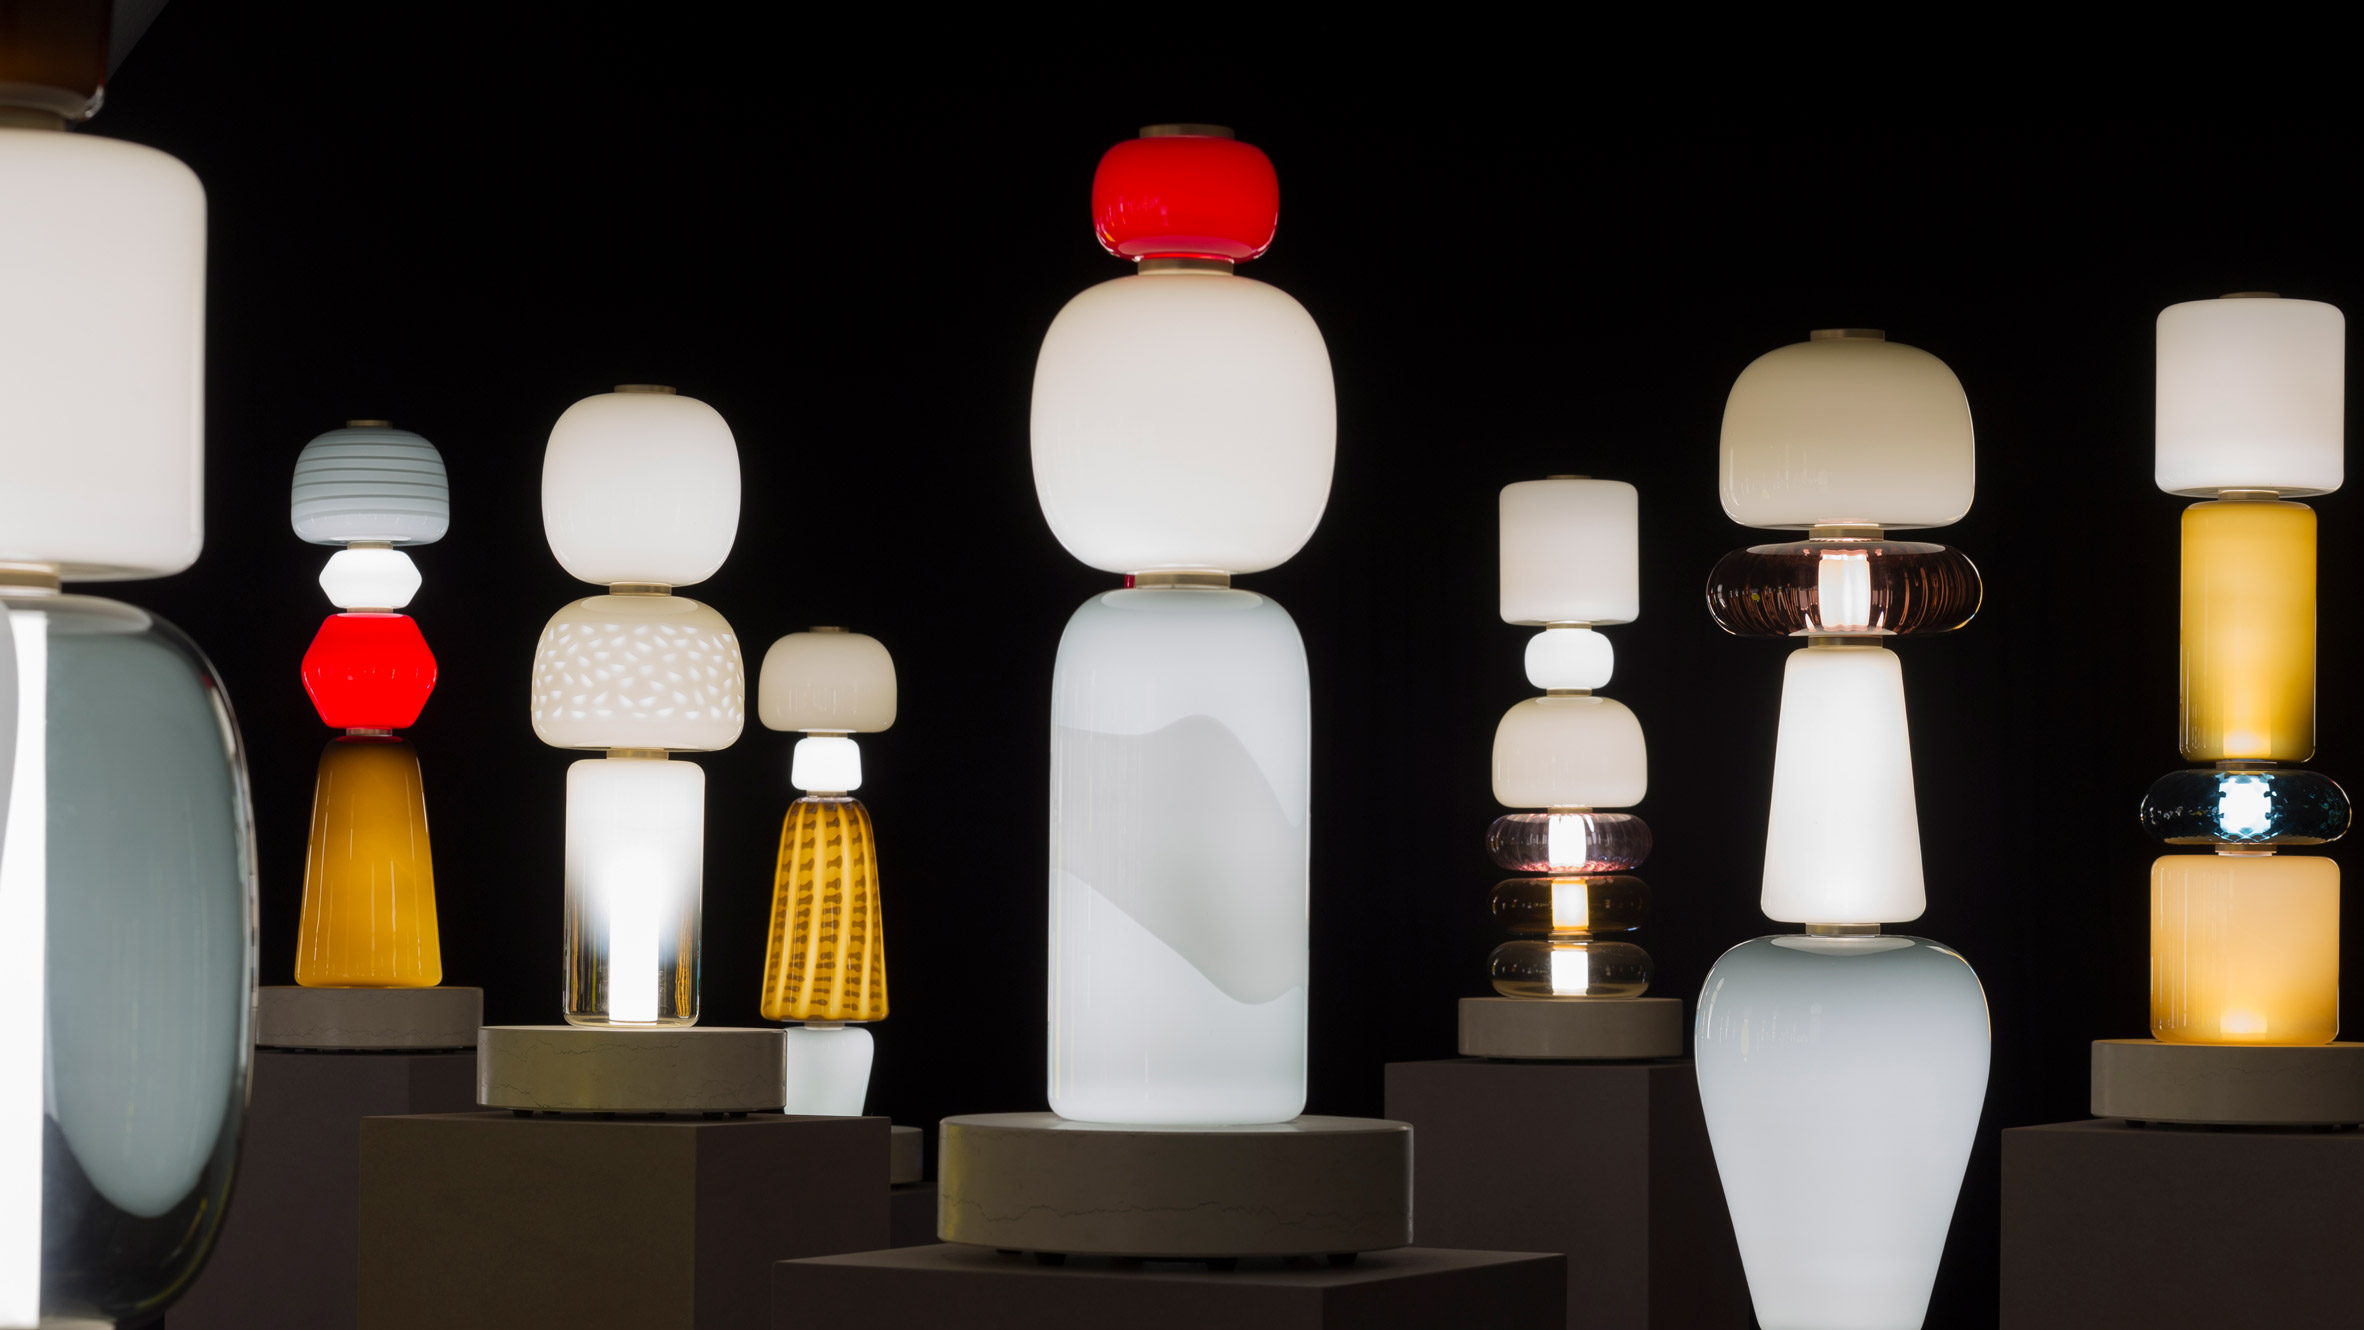 decode lighting. Luca Nichetto Fills Room With Totem-like Glass Lamps For Decode/Recode Exhibition Decode Lighting